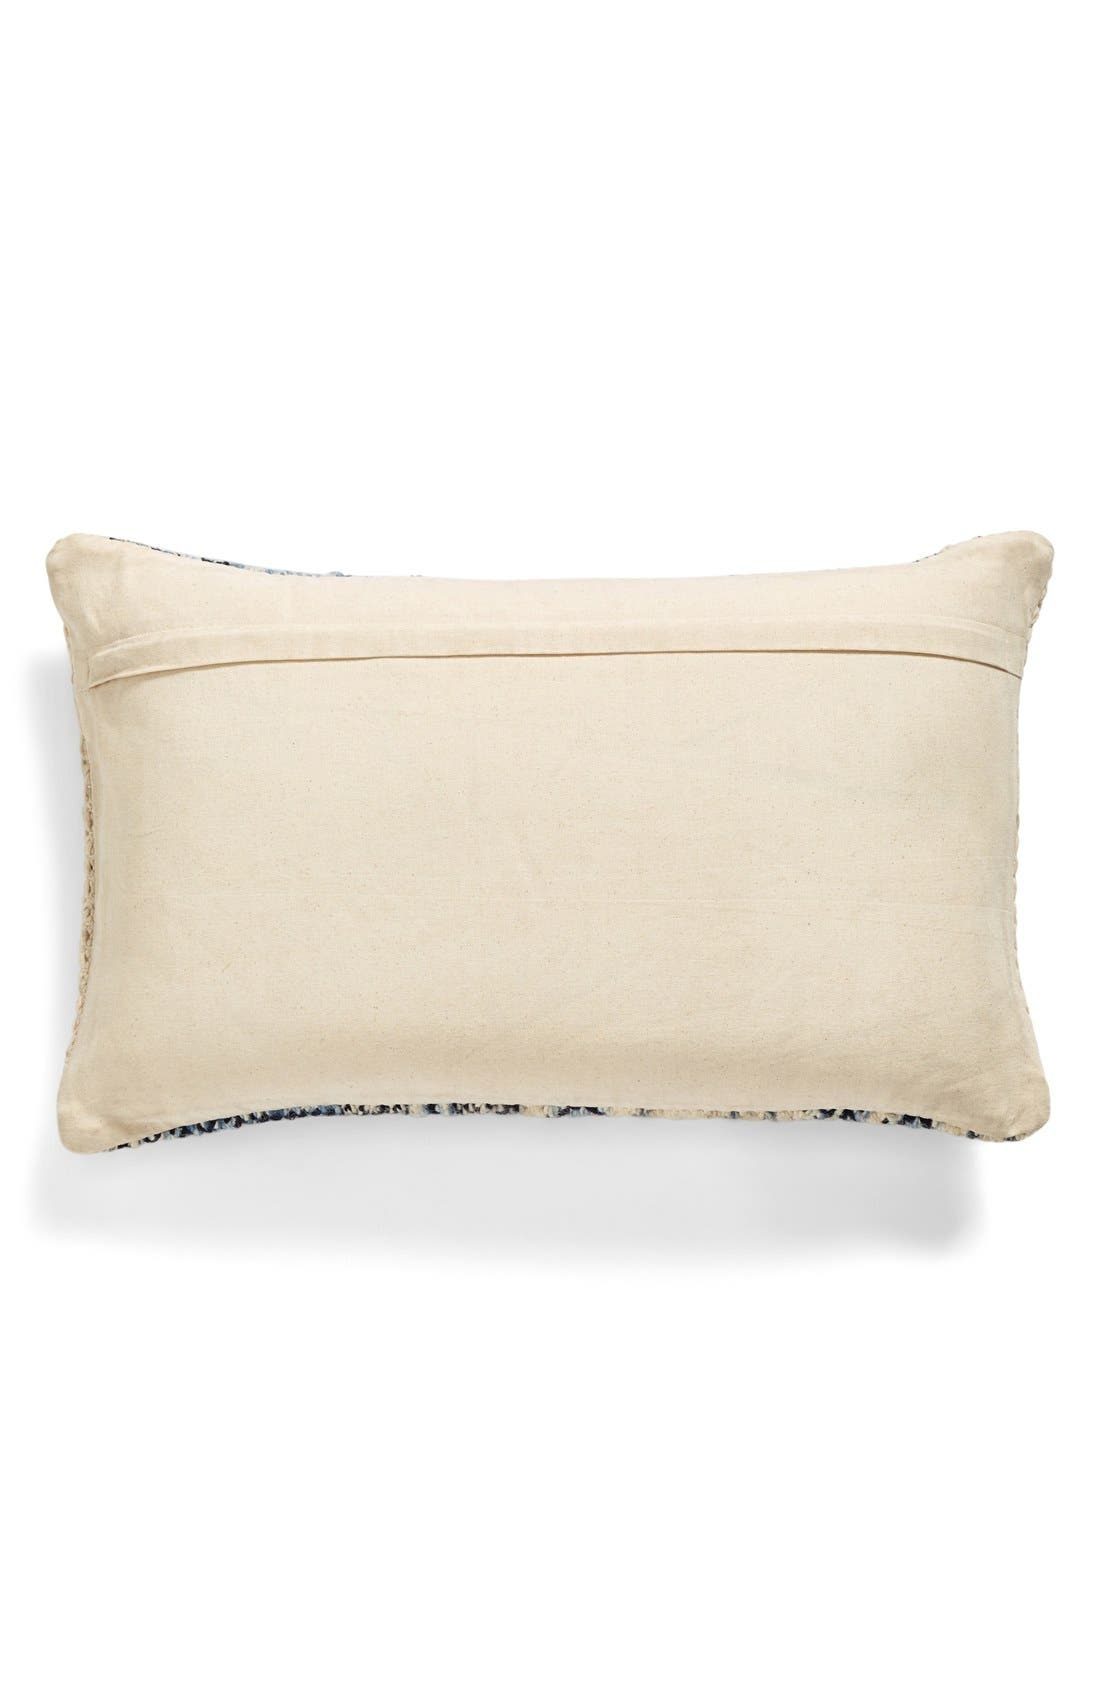 Alternate Image 2  - Brentwood Originals 16 x 26 'Chindi' Woven Pillow